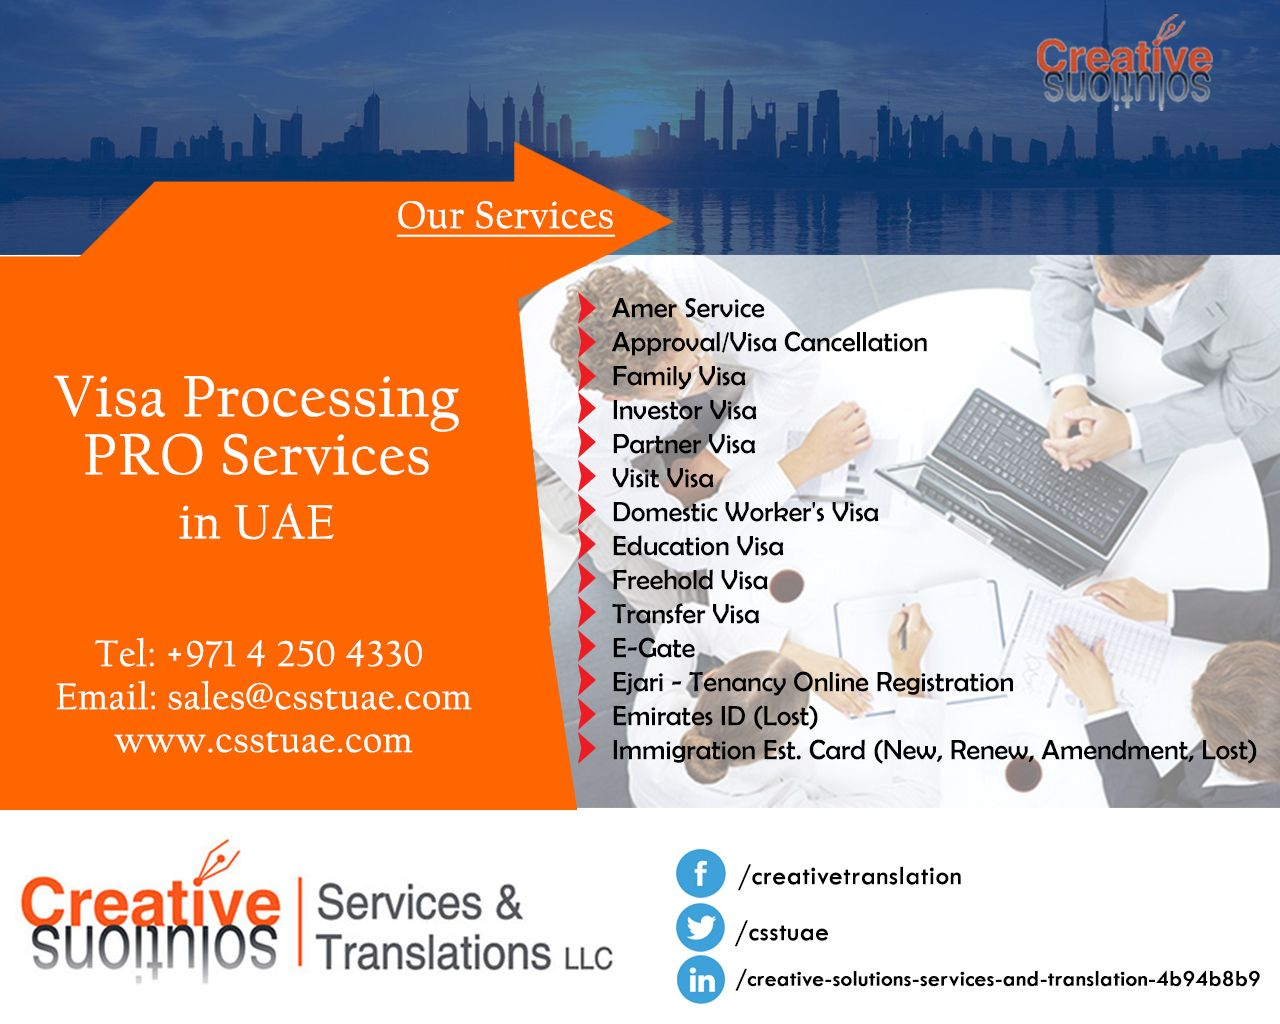 Creative Solutions Services & Translation LLC offers wide